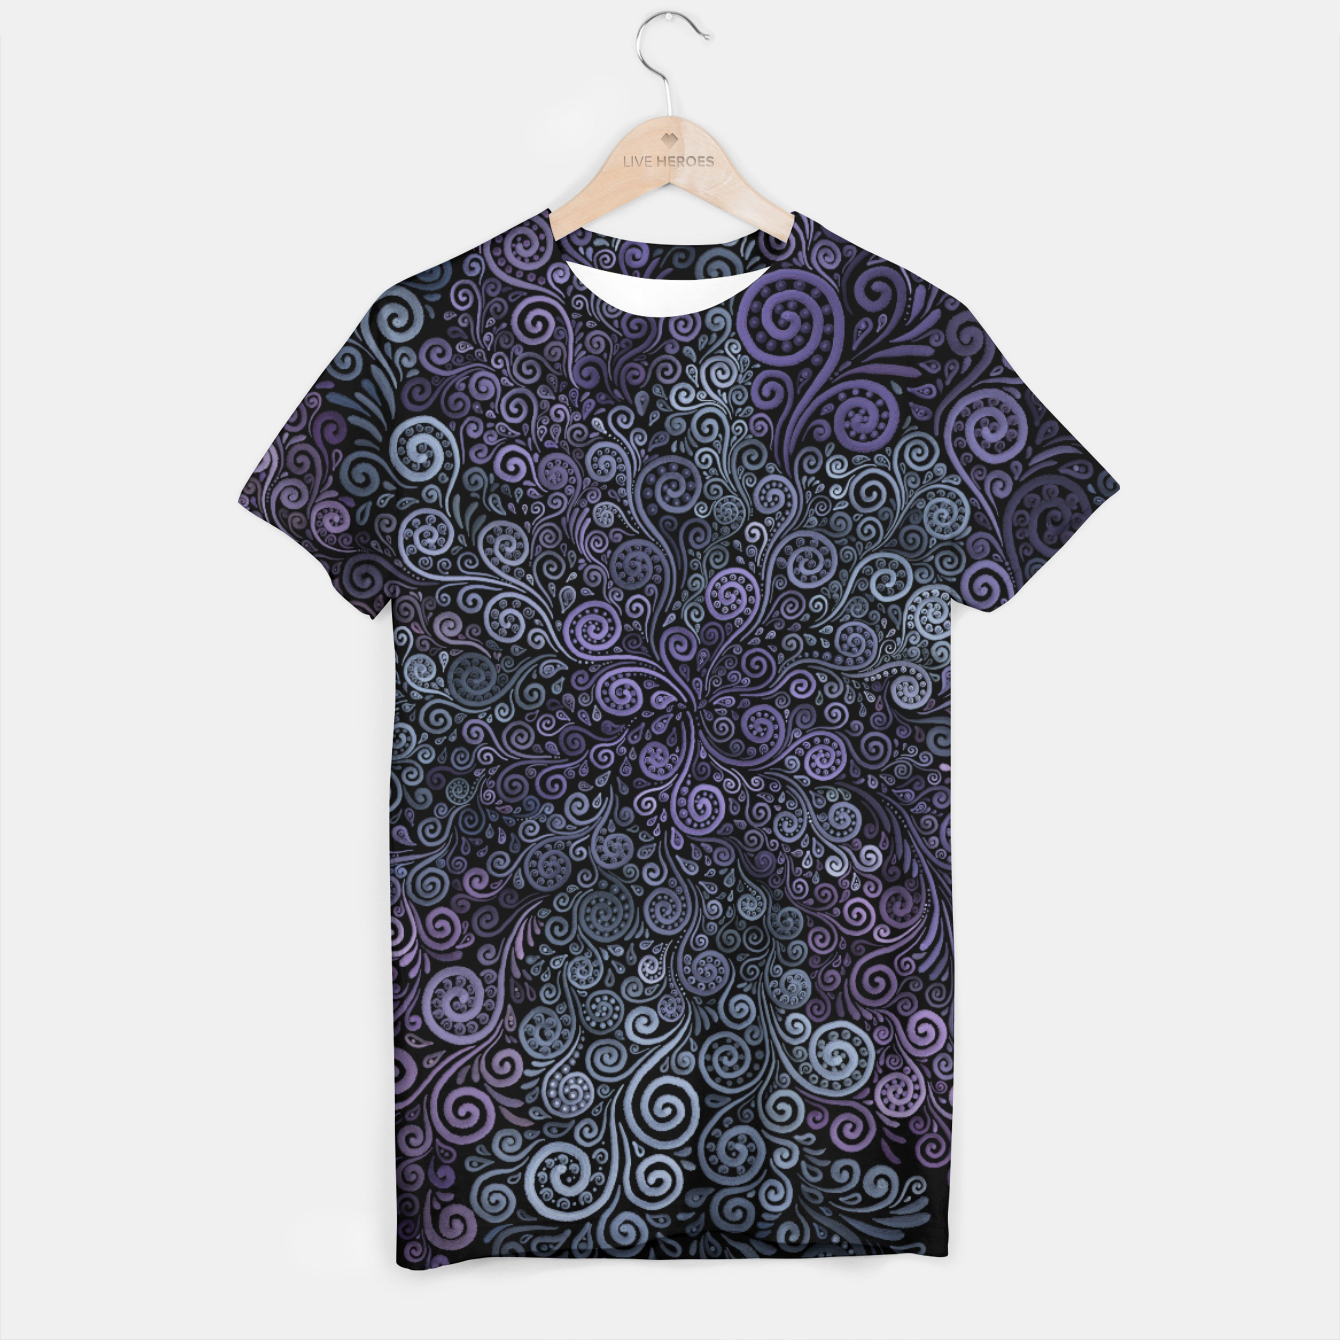 e2b9f8936795 Hand-painted Violet and Teal 3d Psychedelic Floral Pattern T-shirt ...